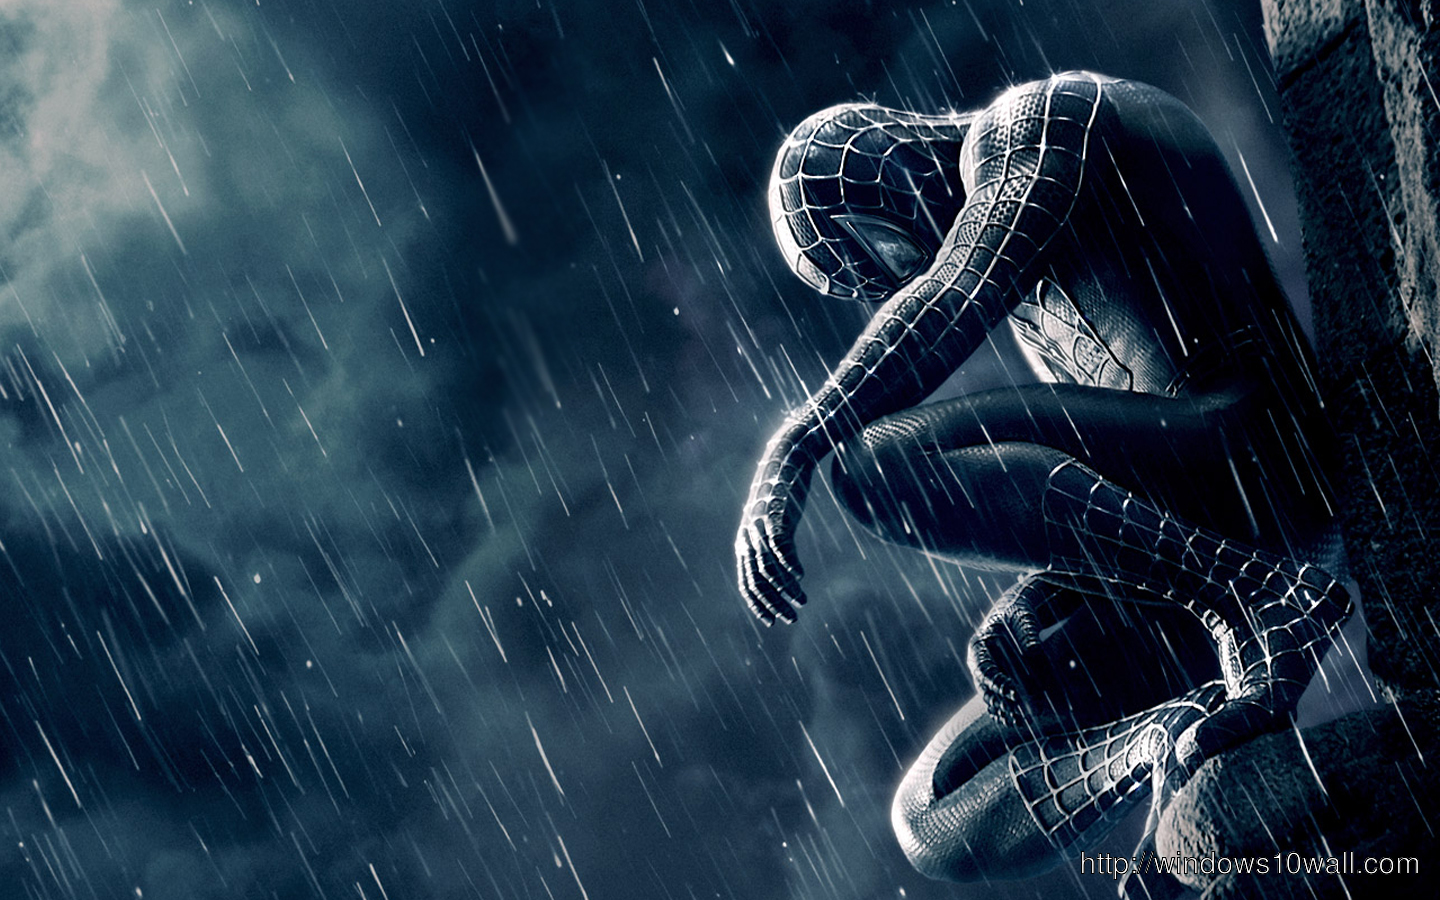 Spiderman Hd Wallpaper For Pc Windows 10 Wallpapers